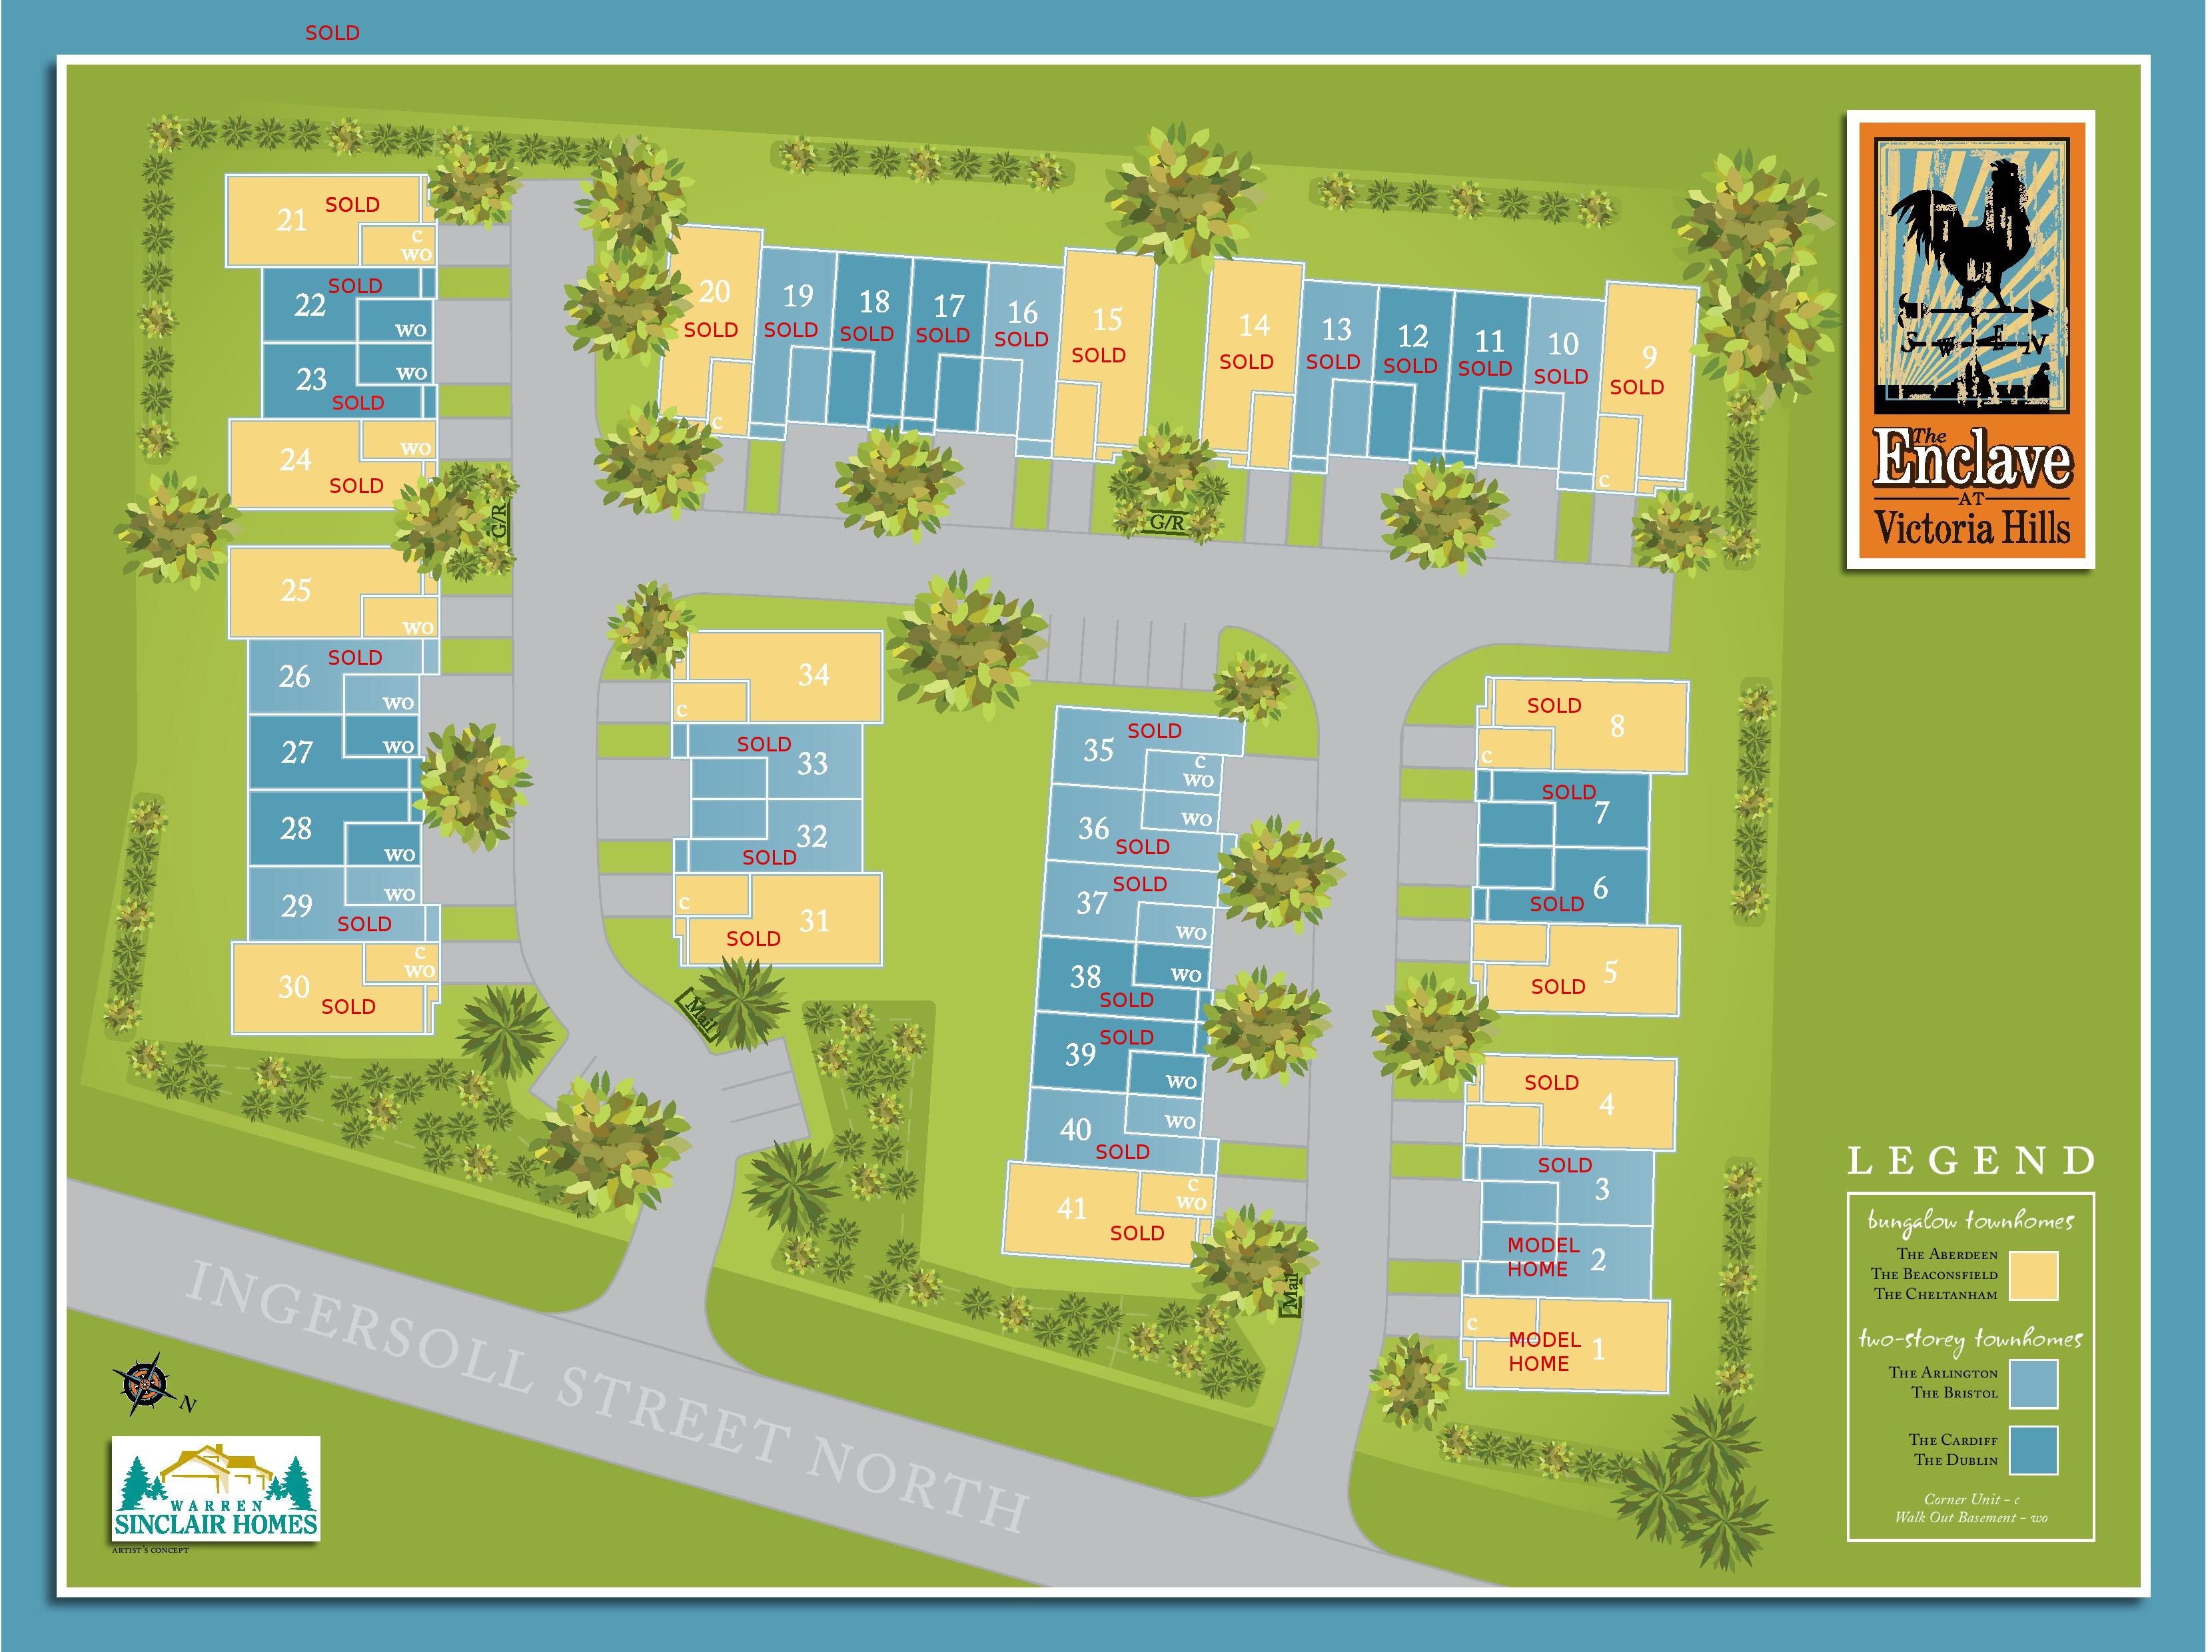 Site plan for The Enclaves at Victoria Hills in Ingersoll, Ontario